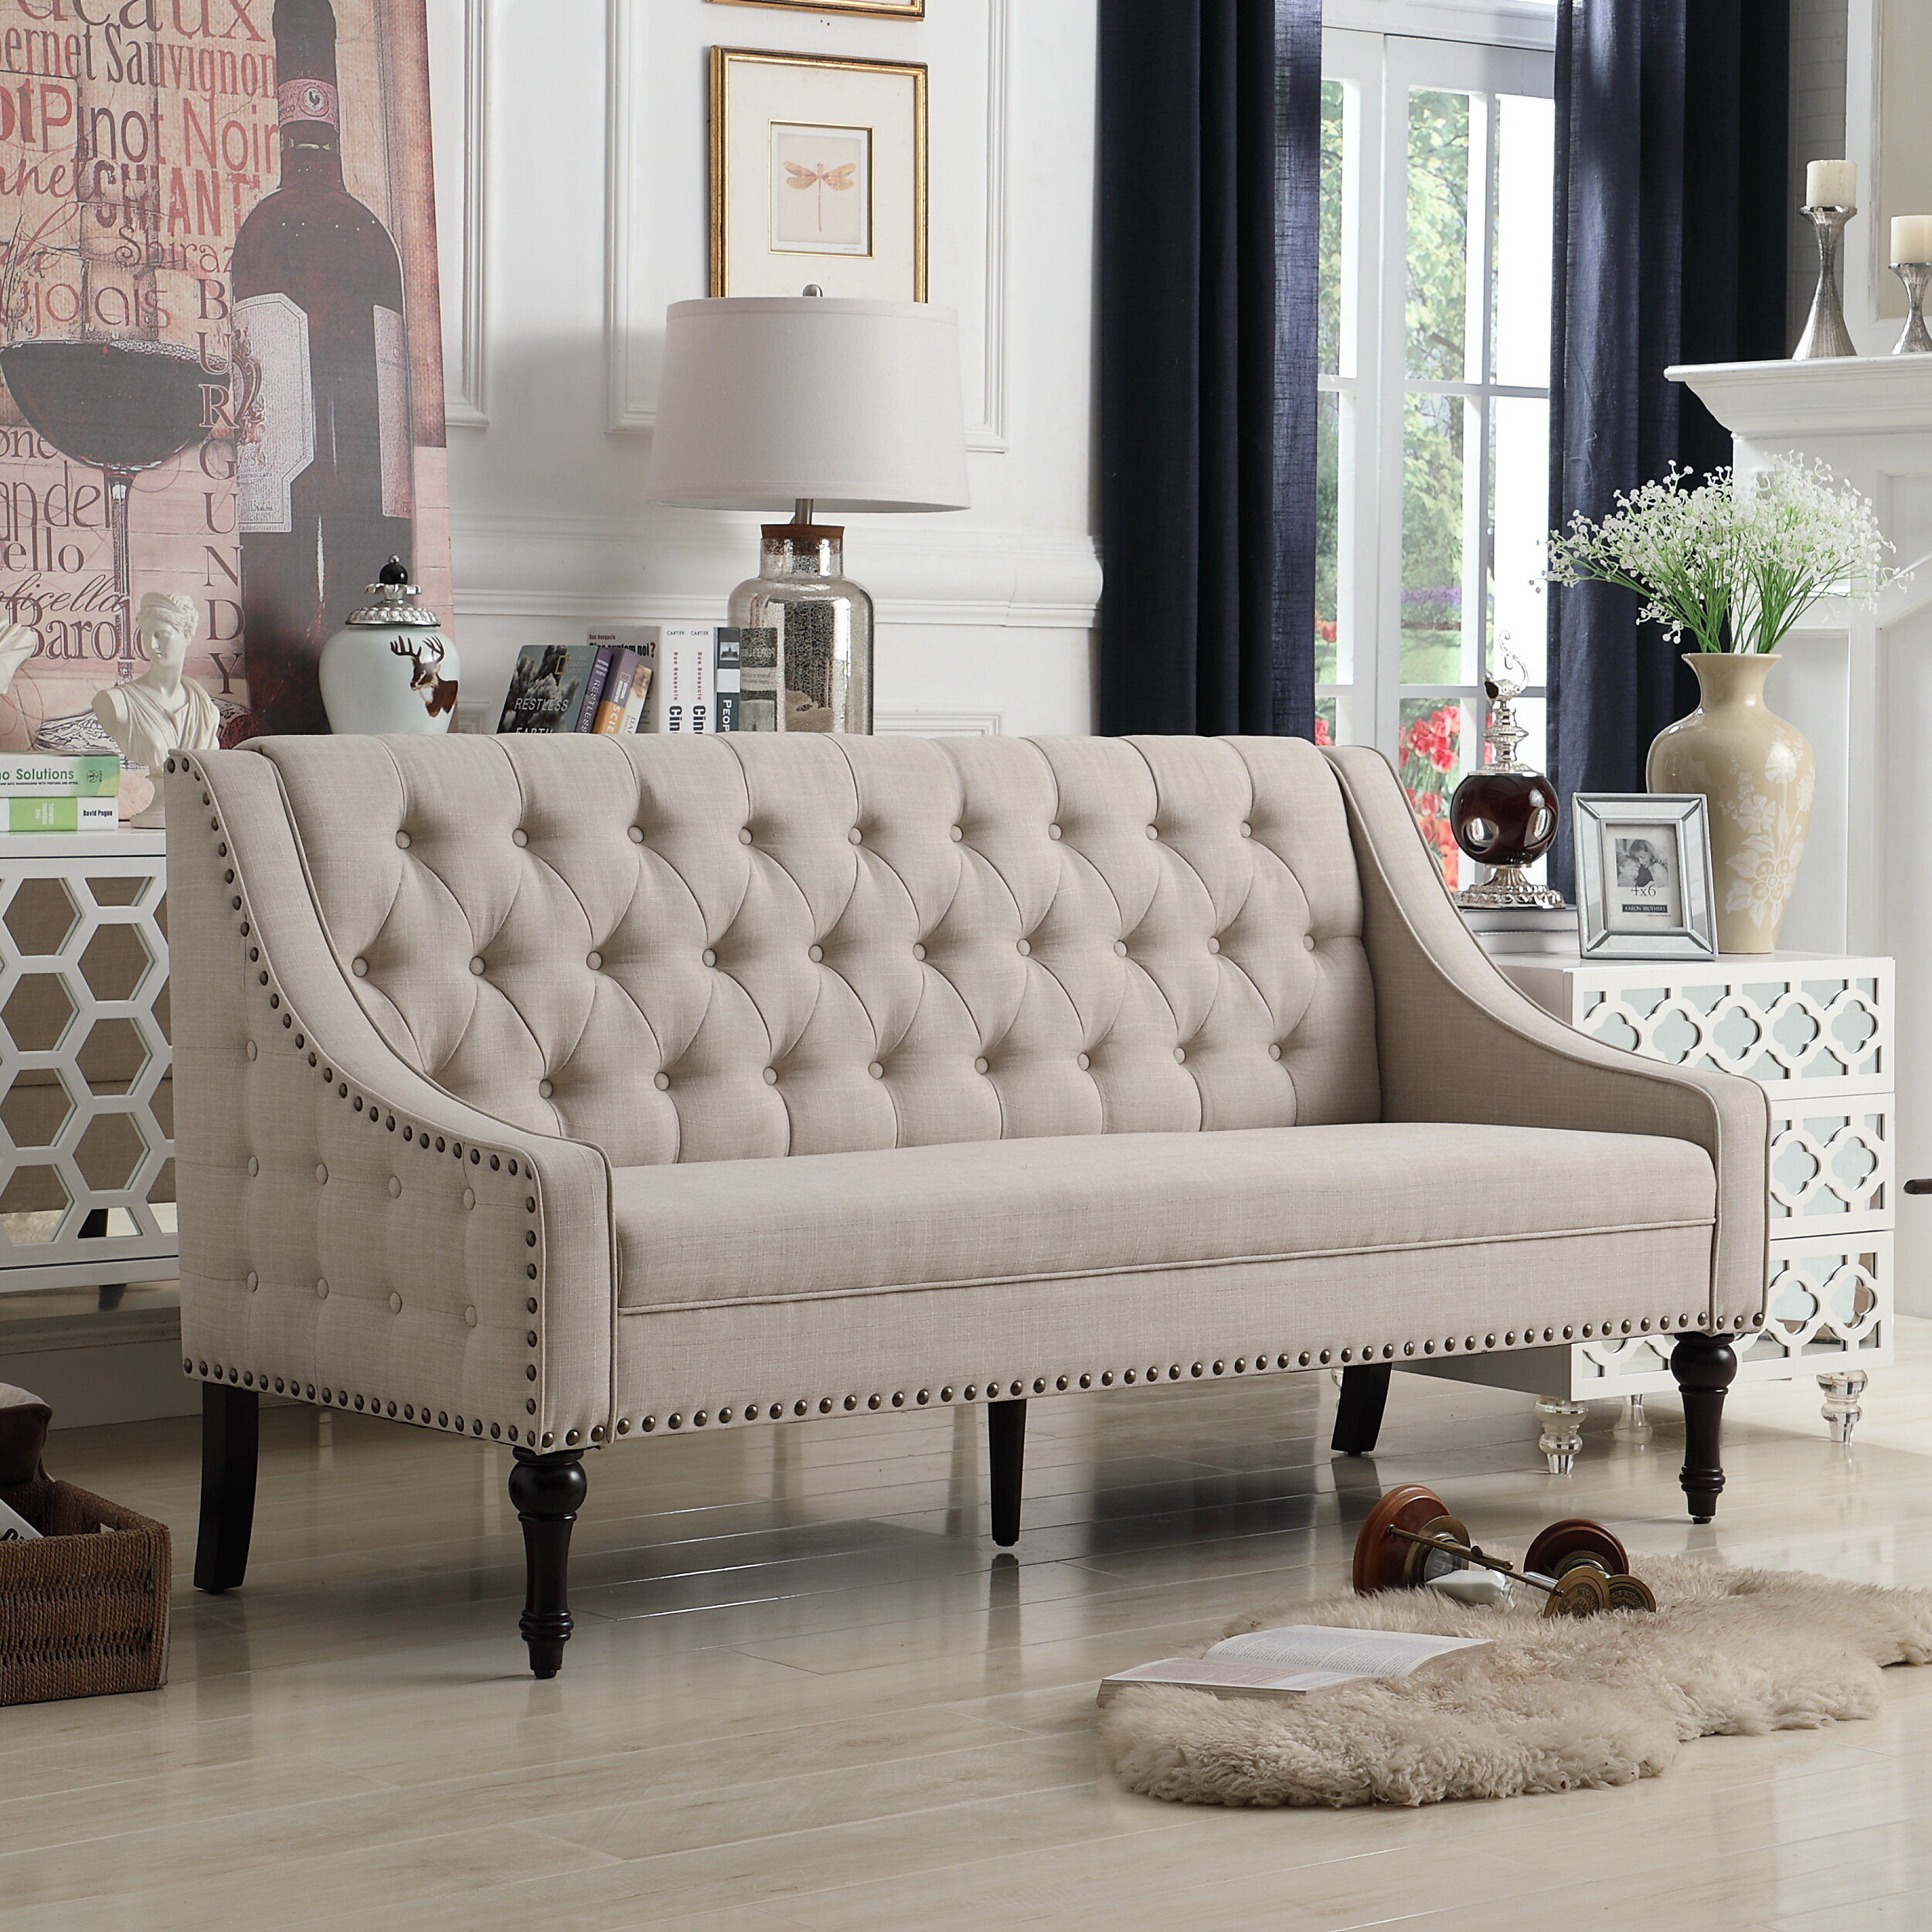 astounding seat full modern back settee size furniture of photo design coaster bedroom high new bench sofa cushion tufted